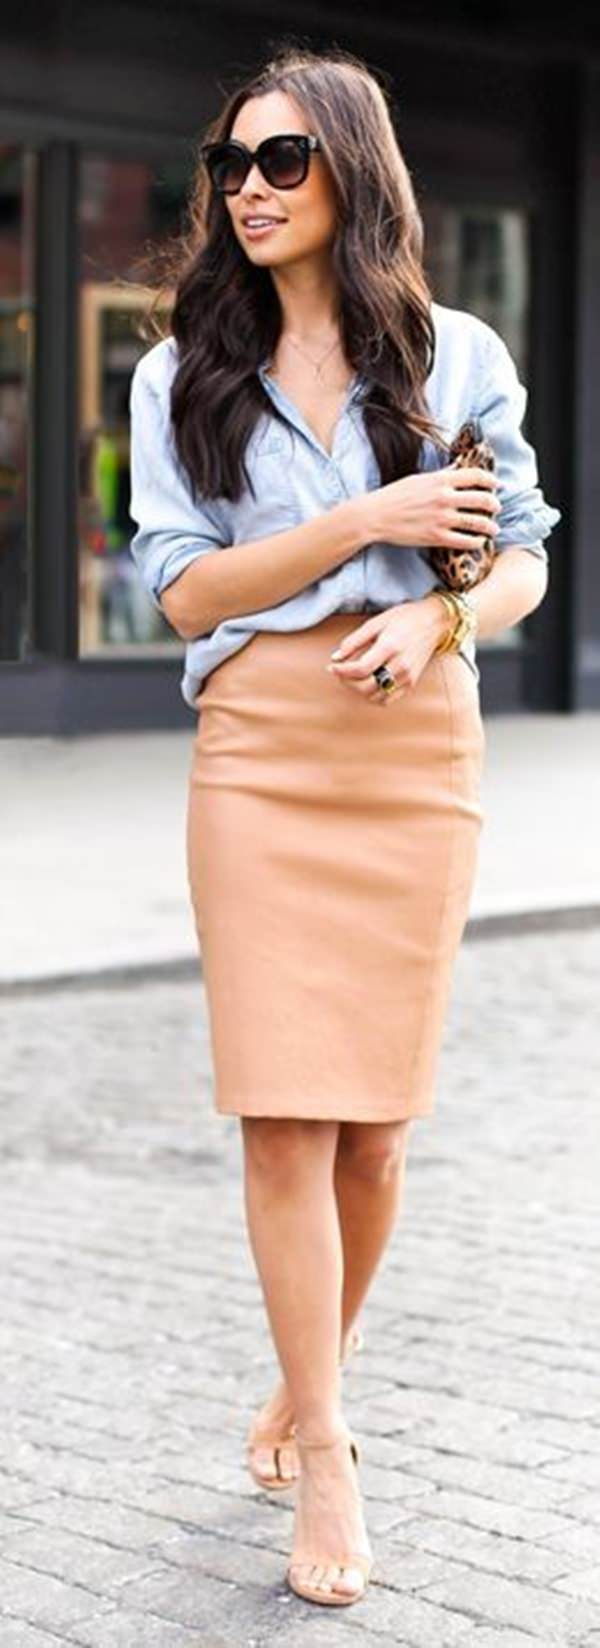 7 Pencil Skirt Outfits that Will Make You Look Like a True #Girlboss